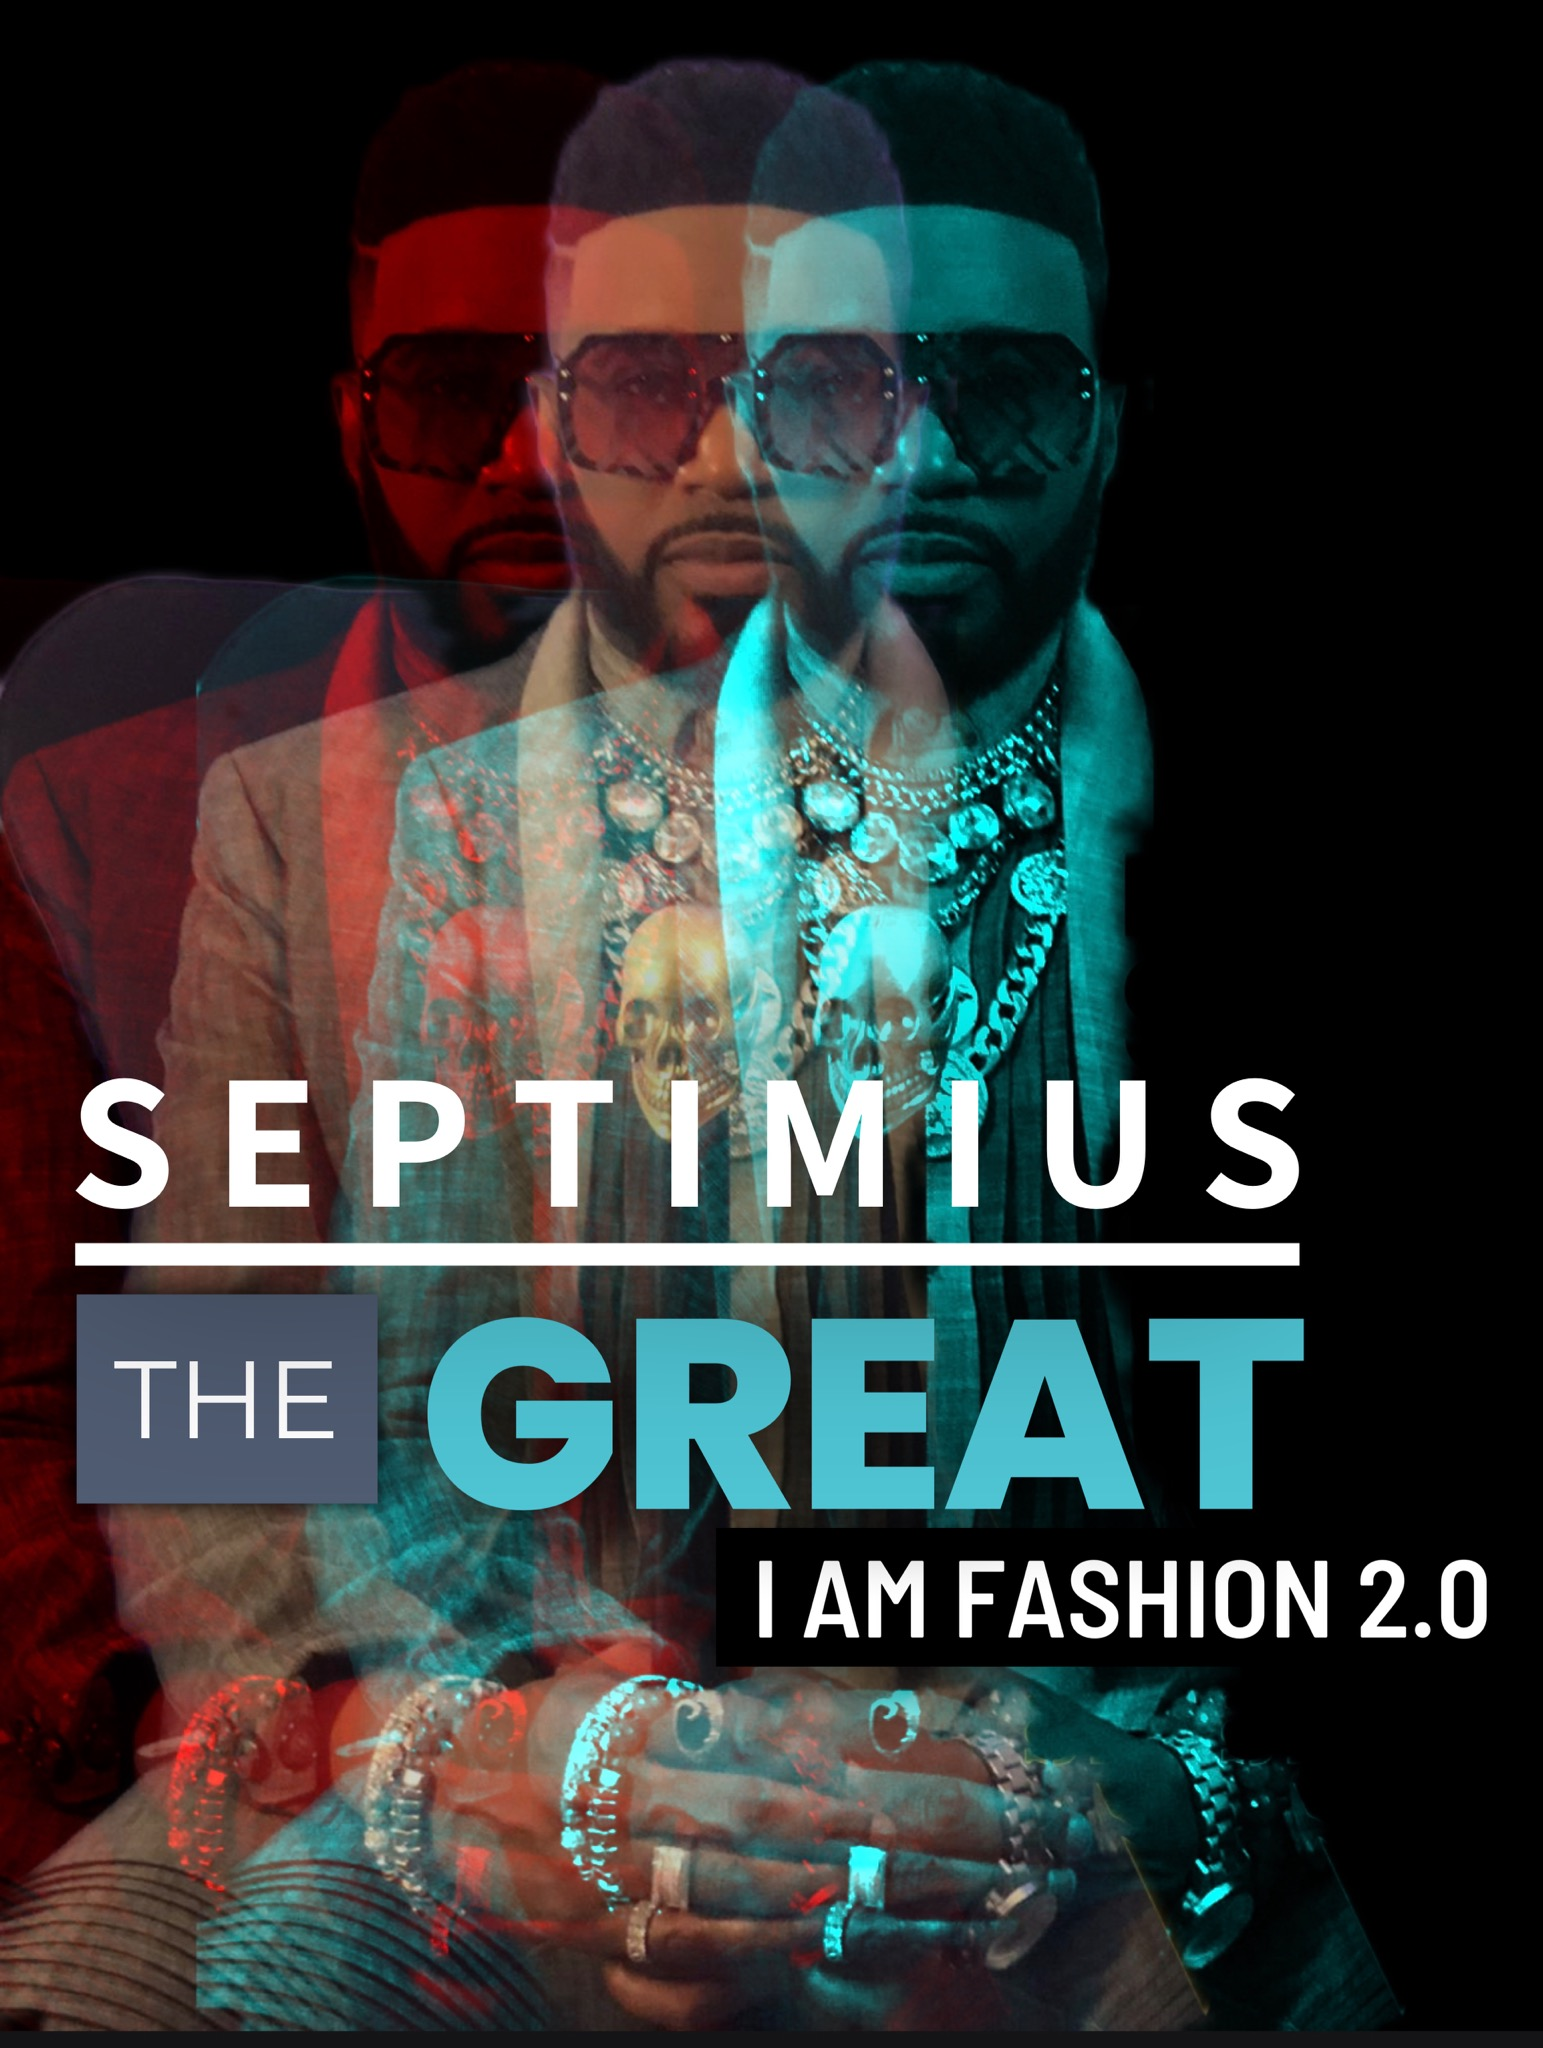 Uncovering One's Most Confident, Fashionable Self with Energizing Dance and Electronic Beats: Rising Artist Septimius the Great Unveils New Single